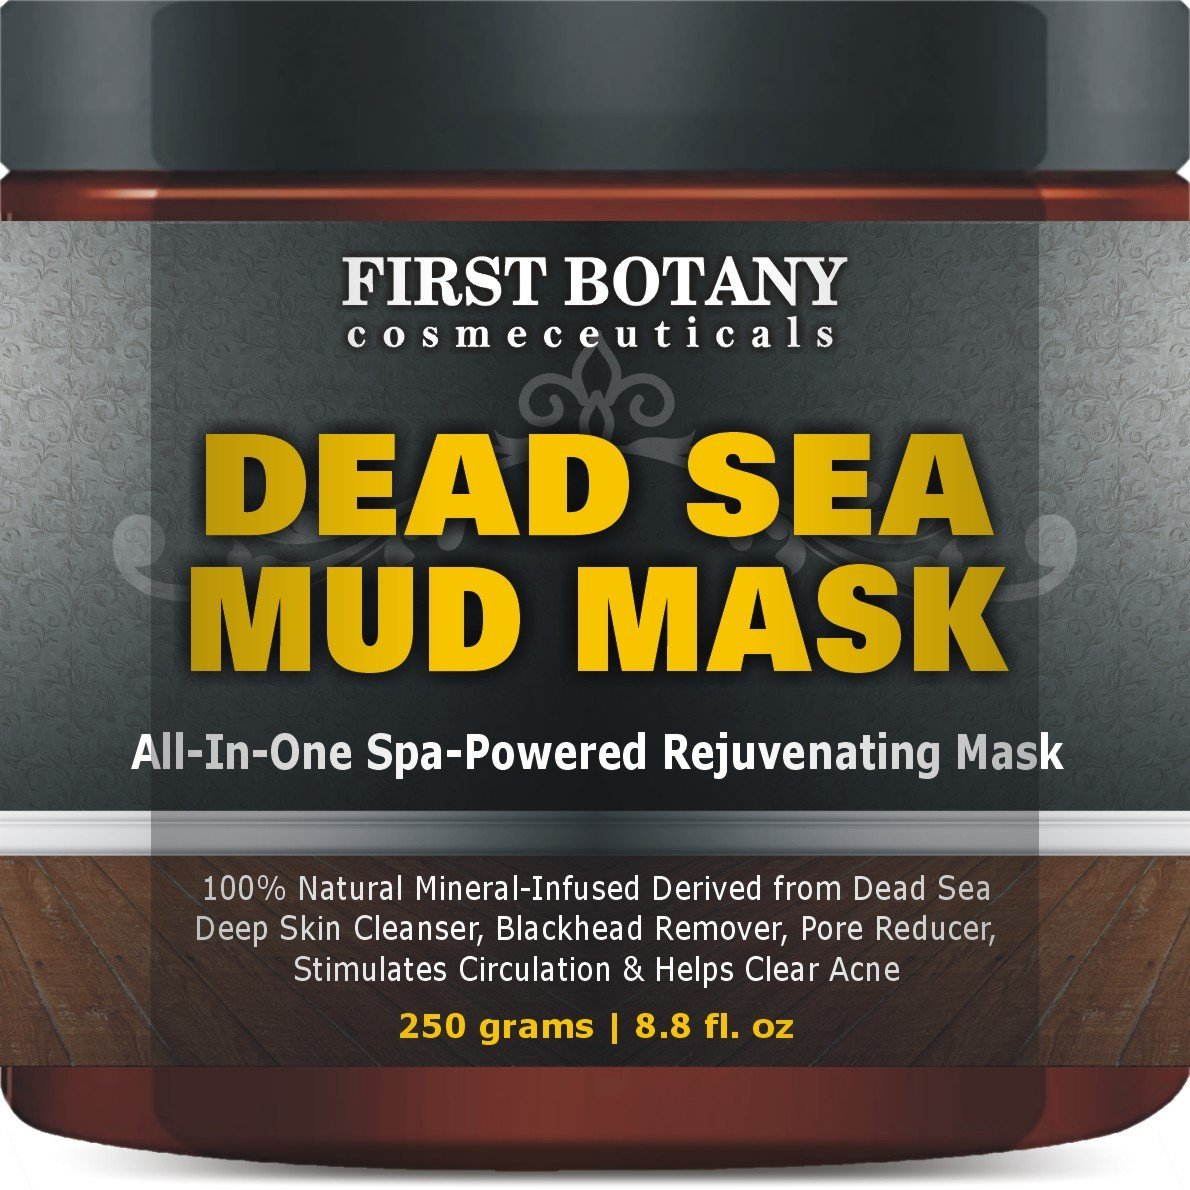 Best Facewash for Blackheads 100% Natural Mineral-Infused Dead Sea Mud Mask